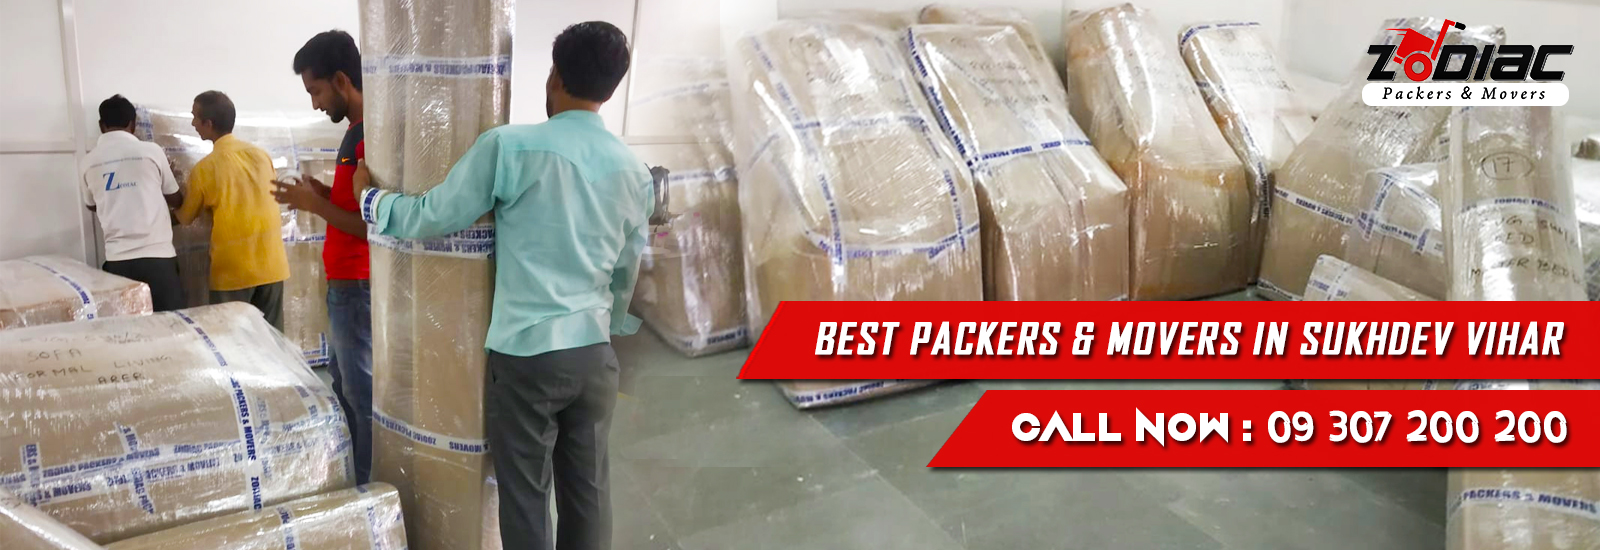 Packers and Movers in Sukhdev Vihar